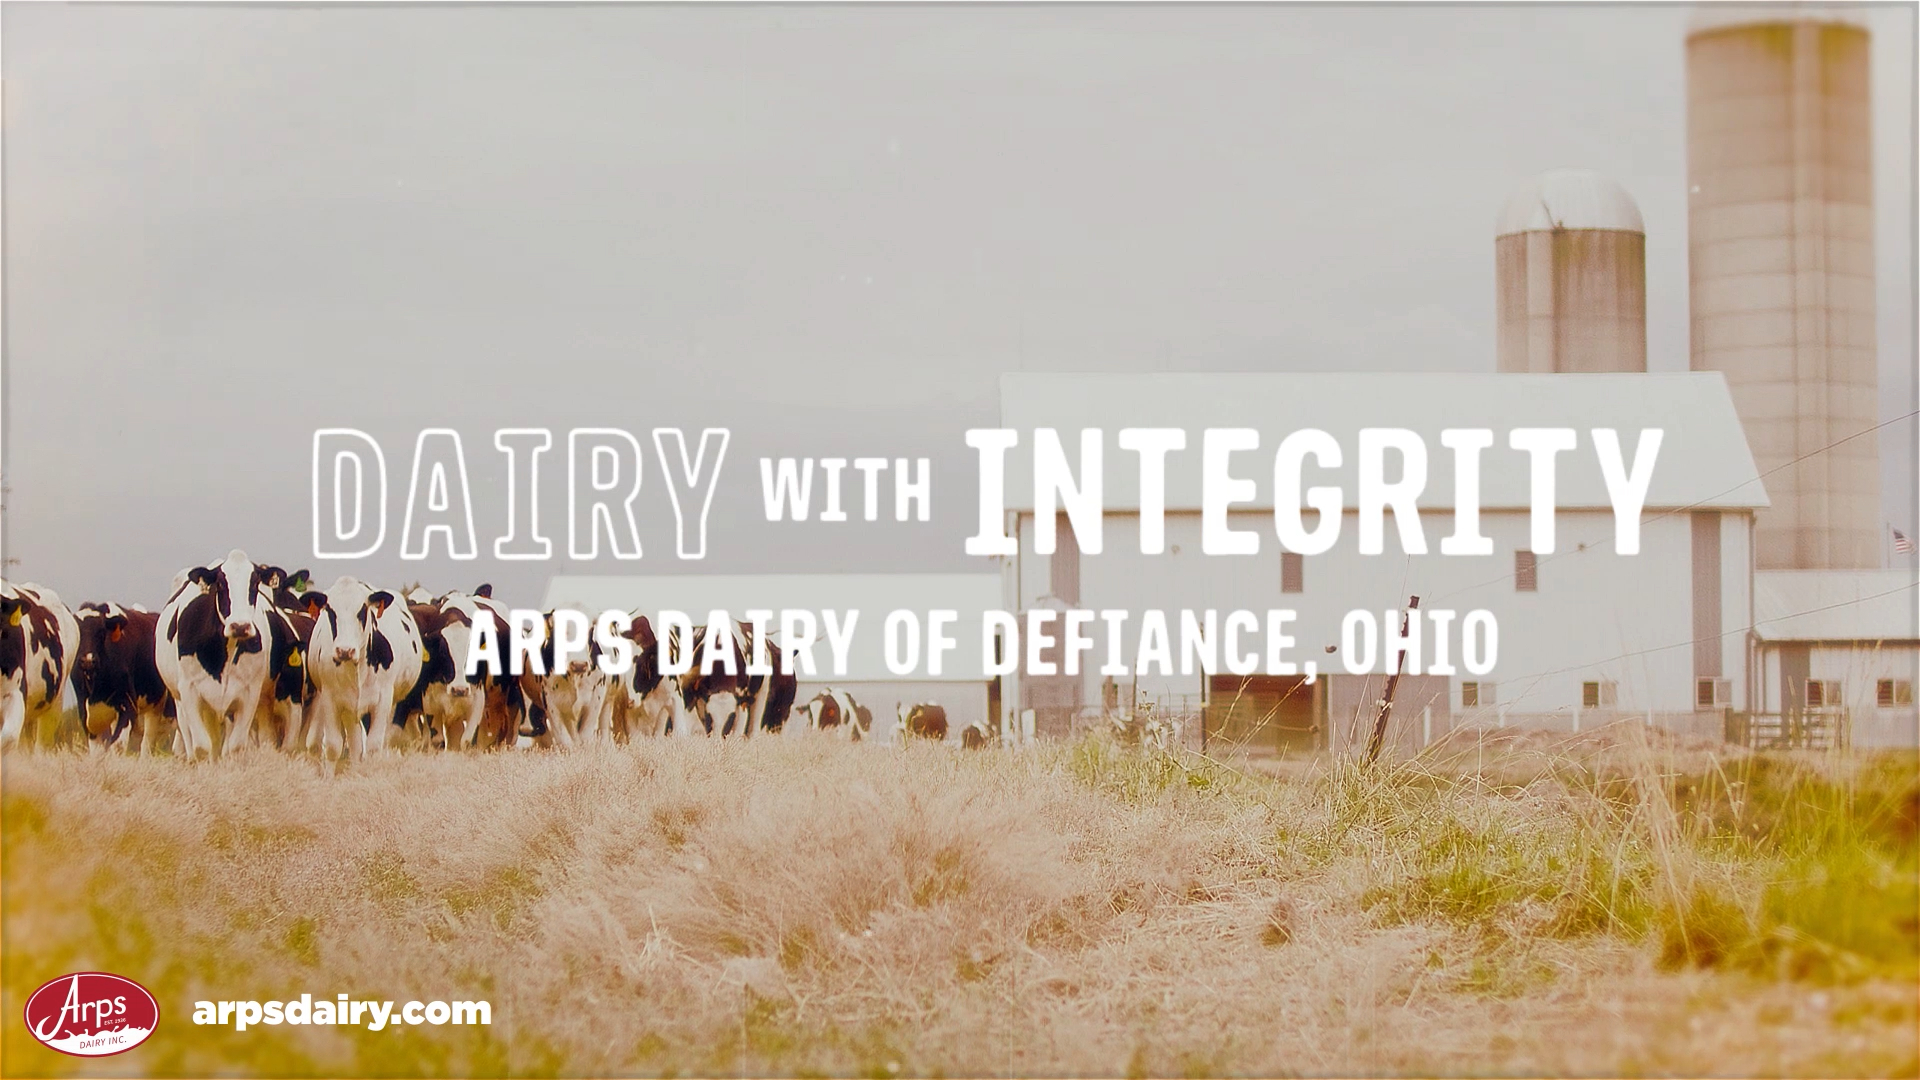 Arps Dairy, Inc. Dairy With Integrity.